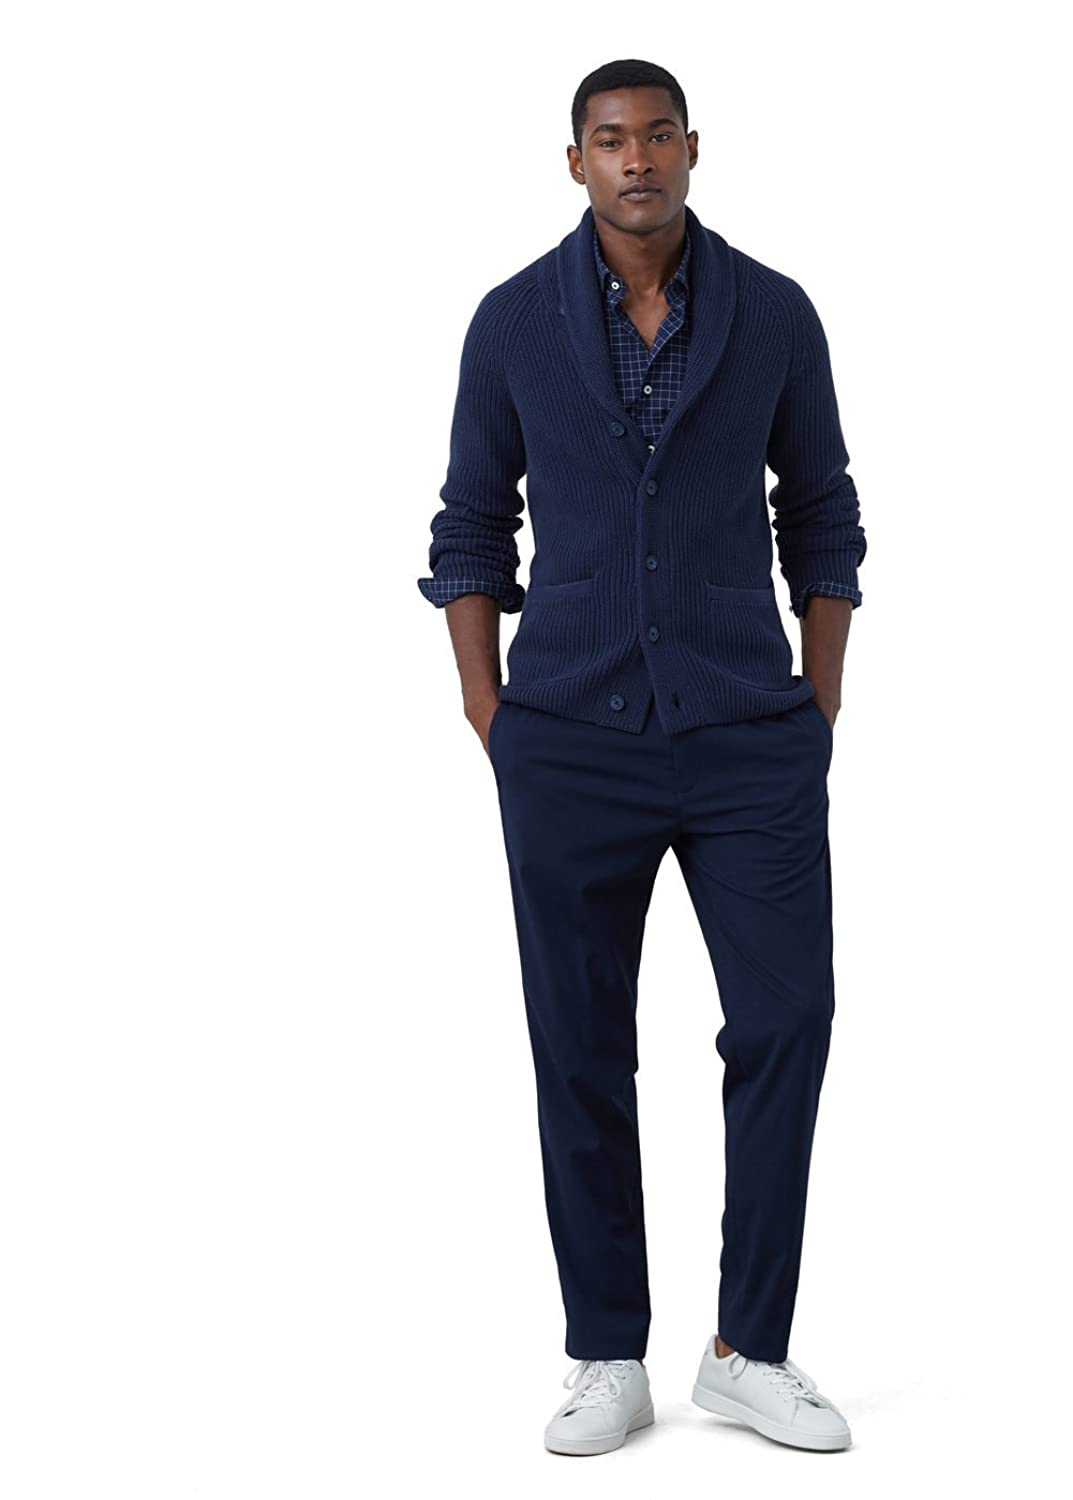 MANGO MAN - Lapel cotton cardigan - Size:XL - Color:Navy